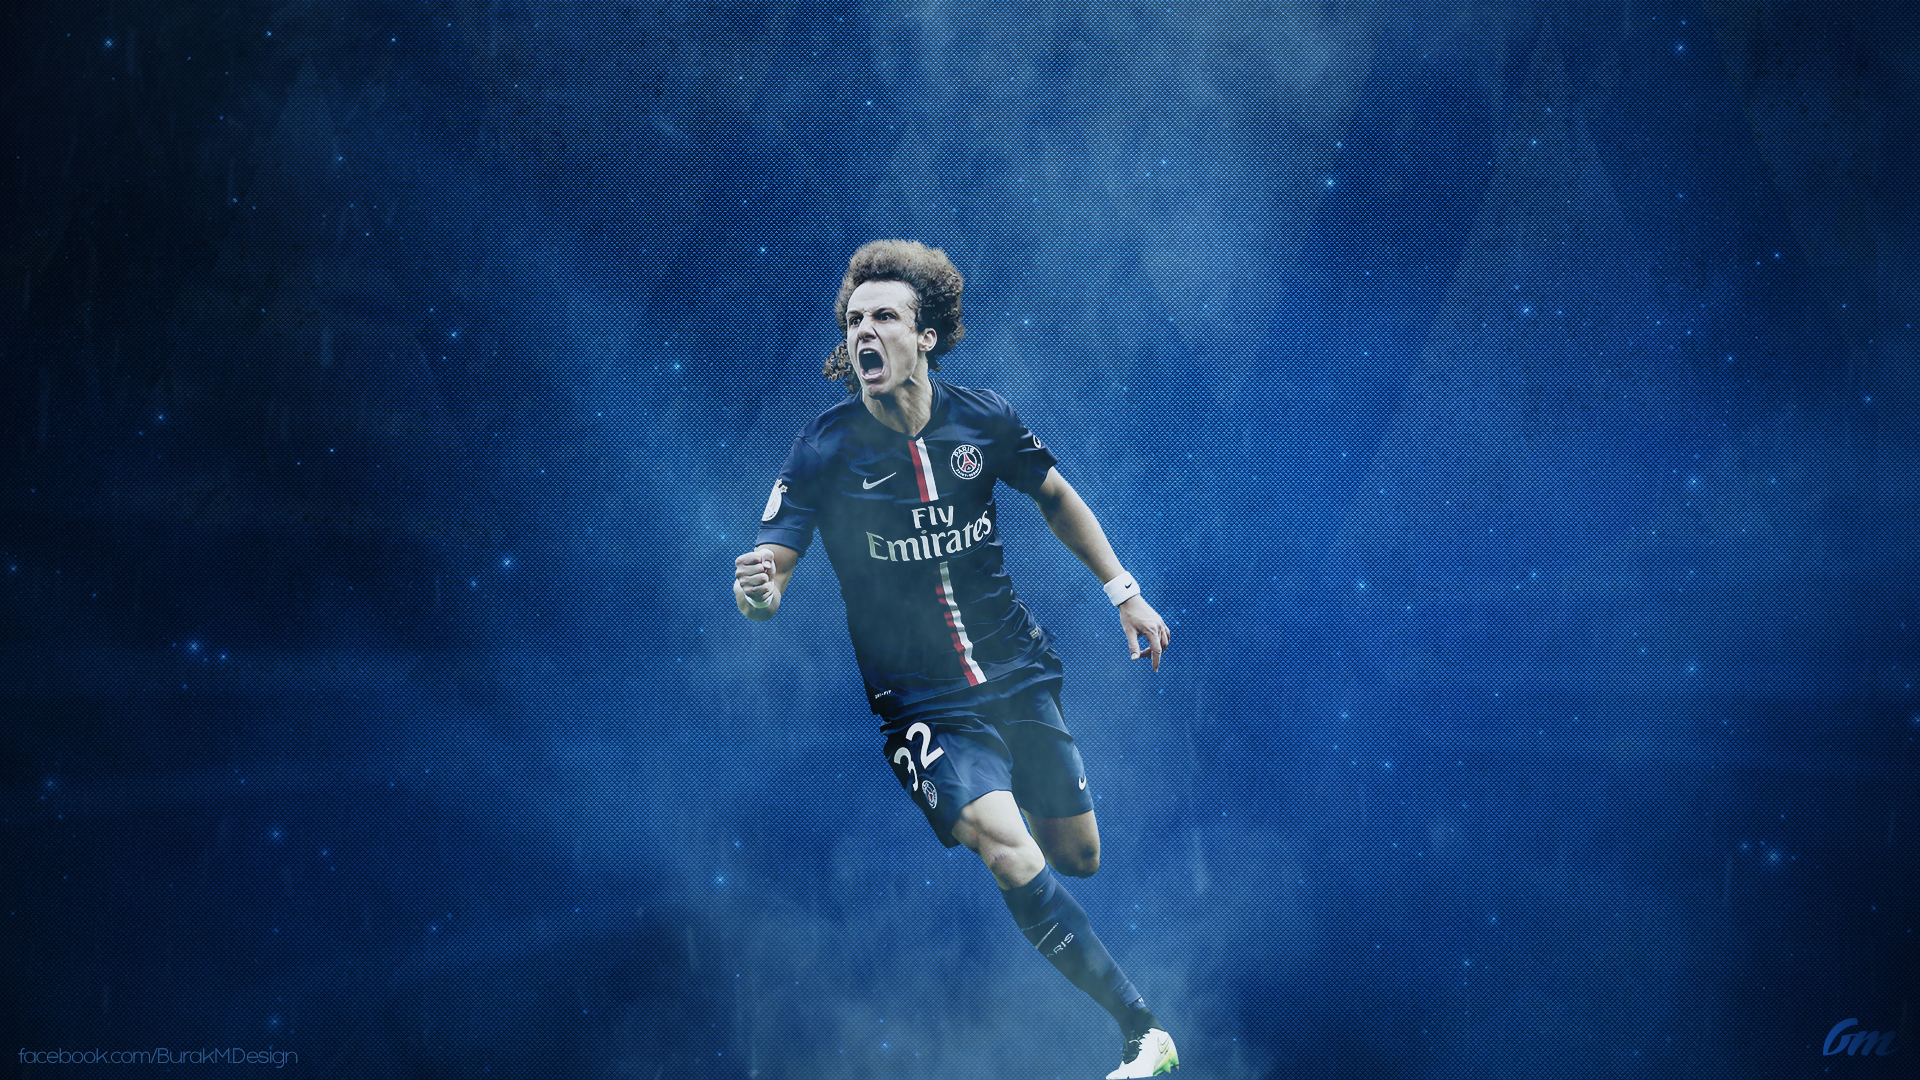 Free HD Chelsea FC Wallpaper: David Luiz Wallpapers 2016